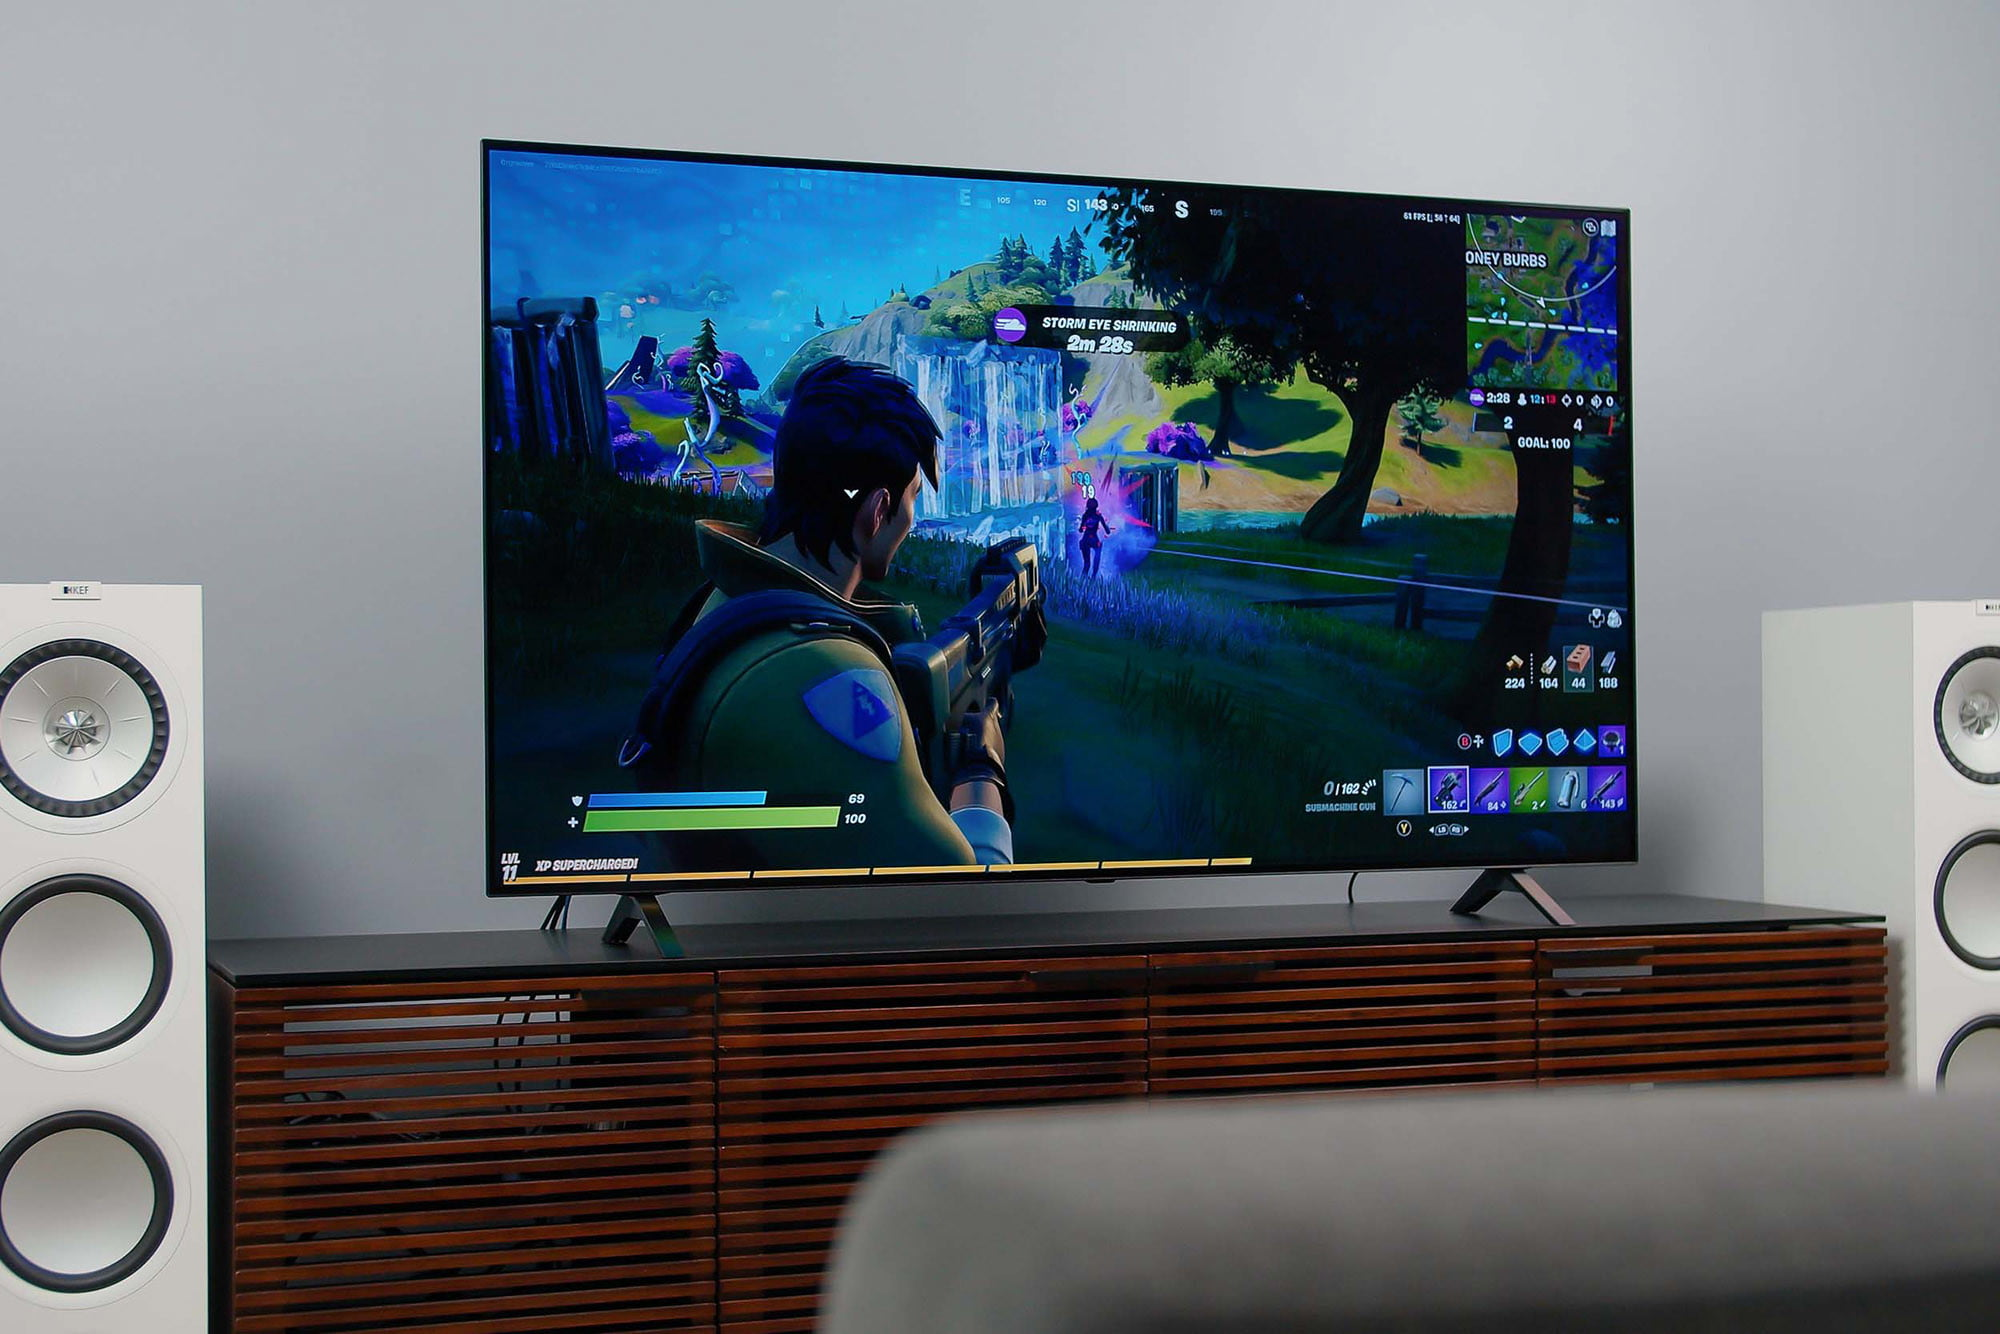 Fortnite video game being played on the LG A1 OLED 4K HDR TV.